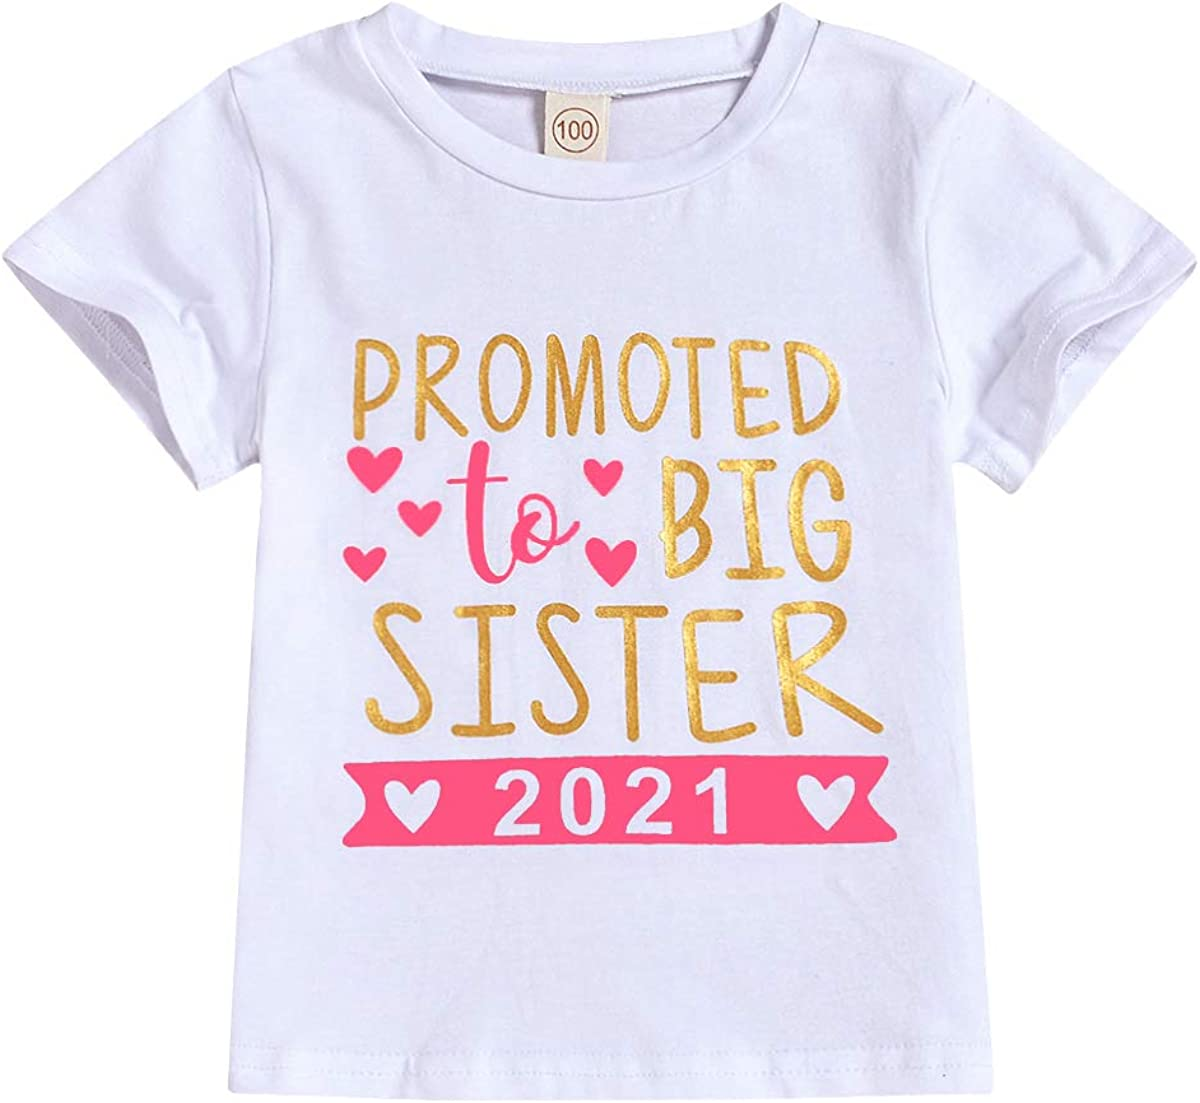 2021 Baby Girl Clothes Outfit Big Sister Letter Print T-Shirt Top Blouse Shirts Birth Announcement Clothes